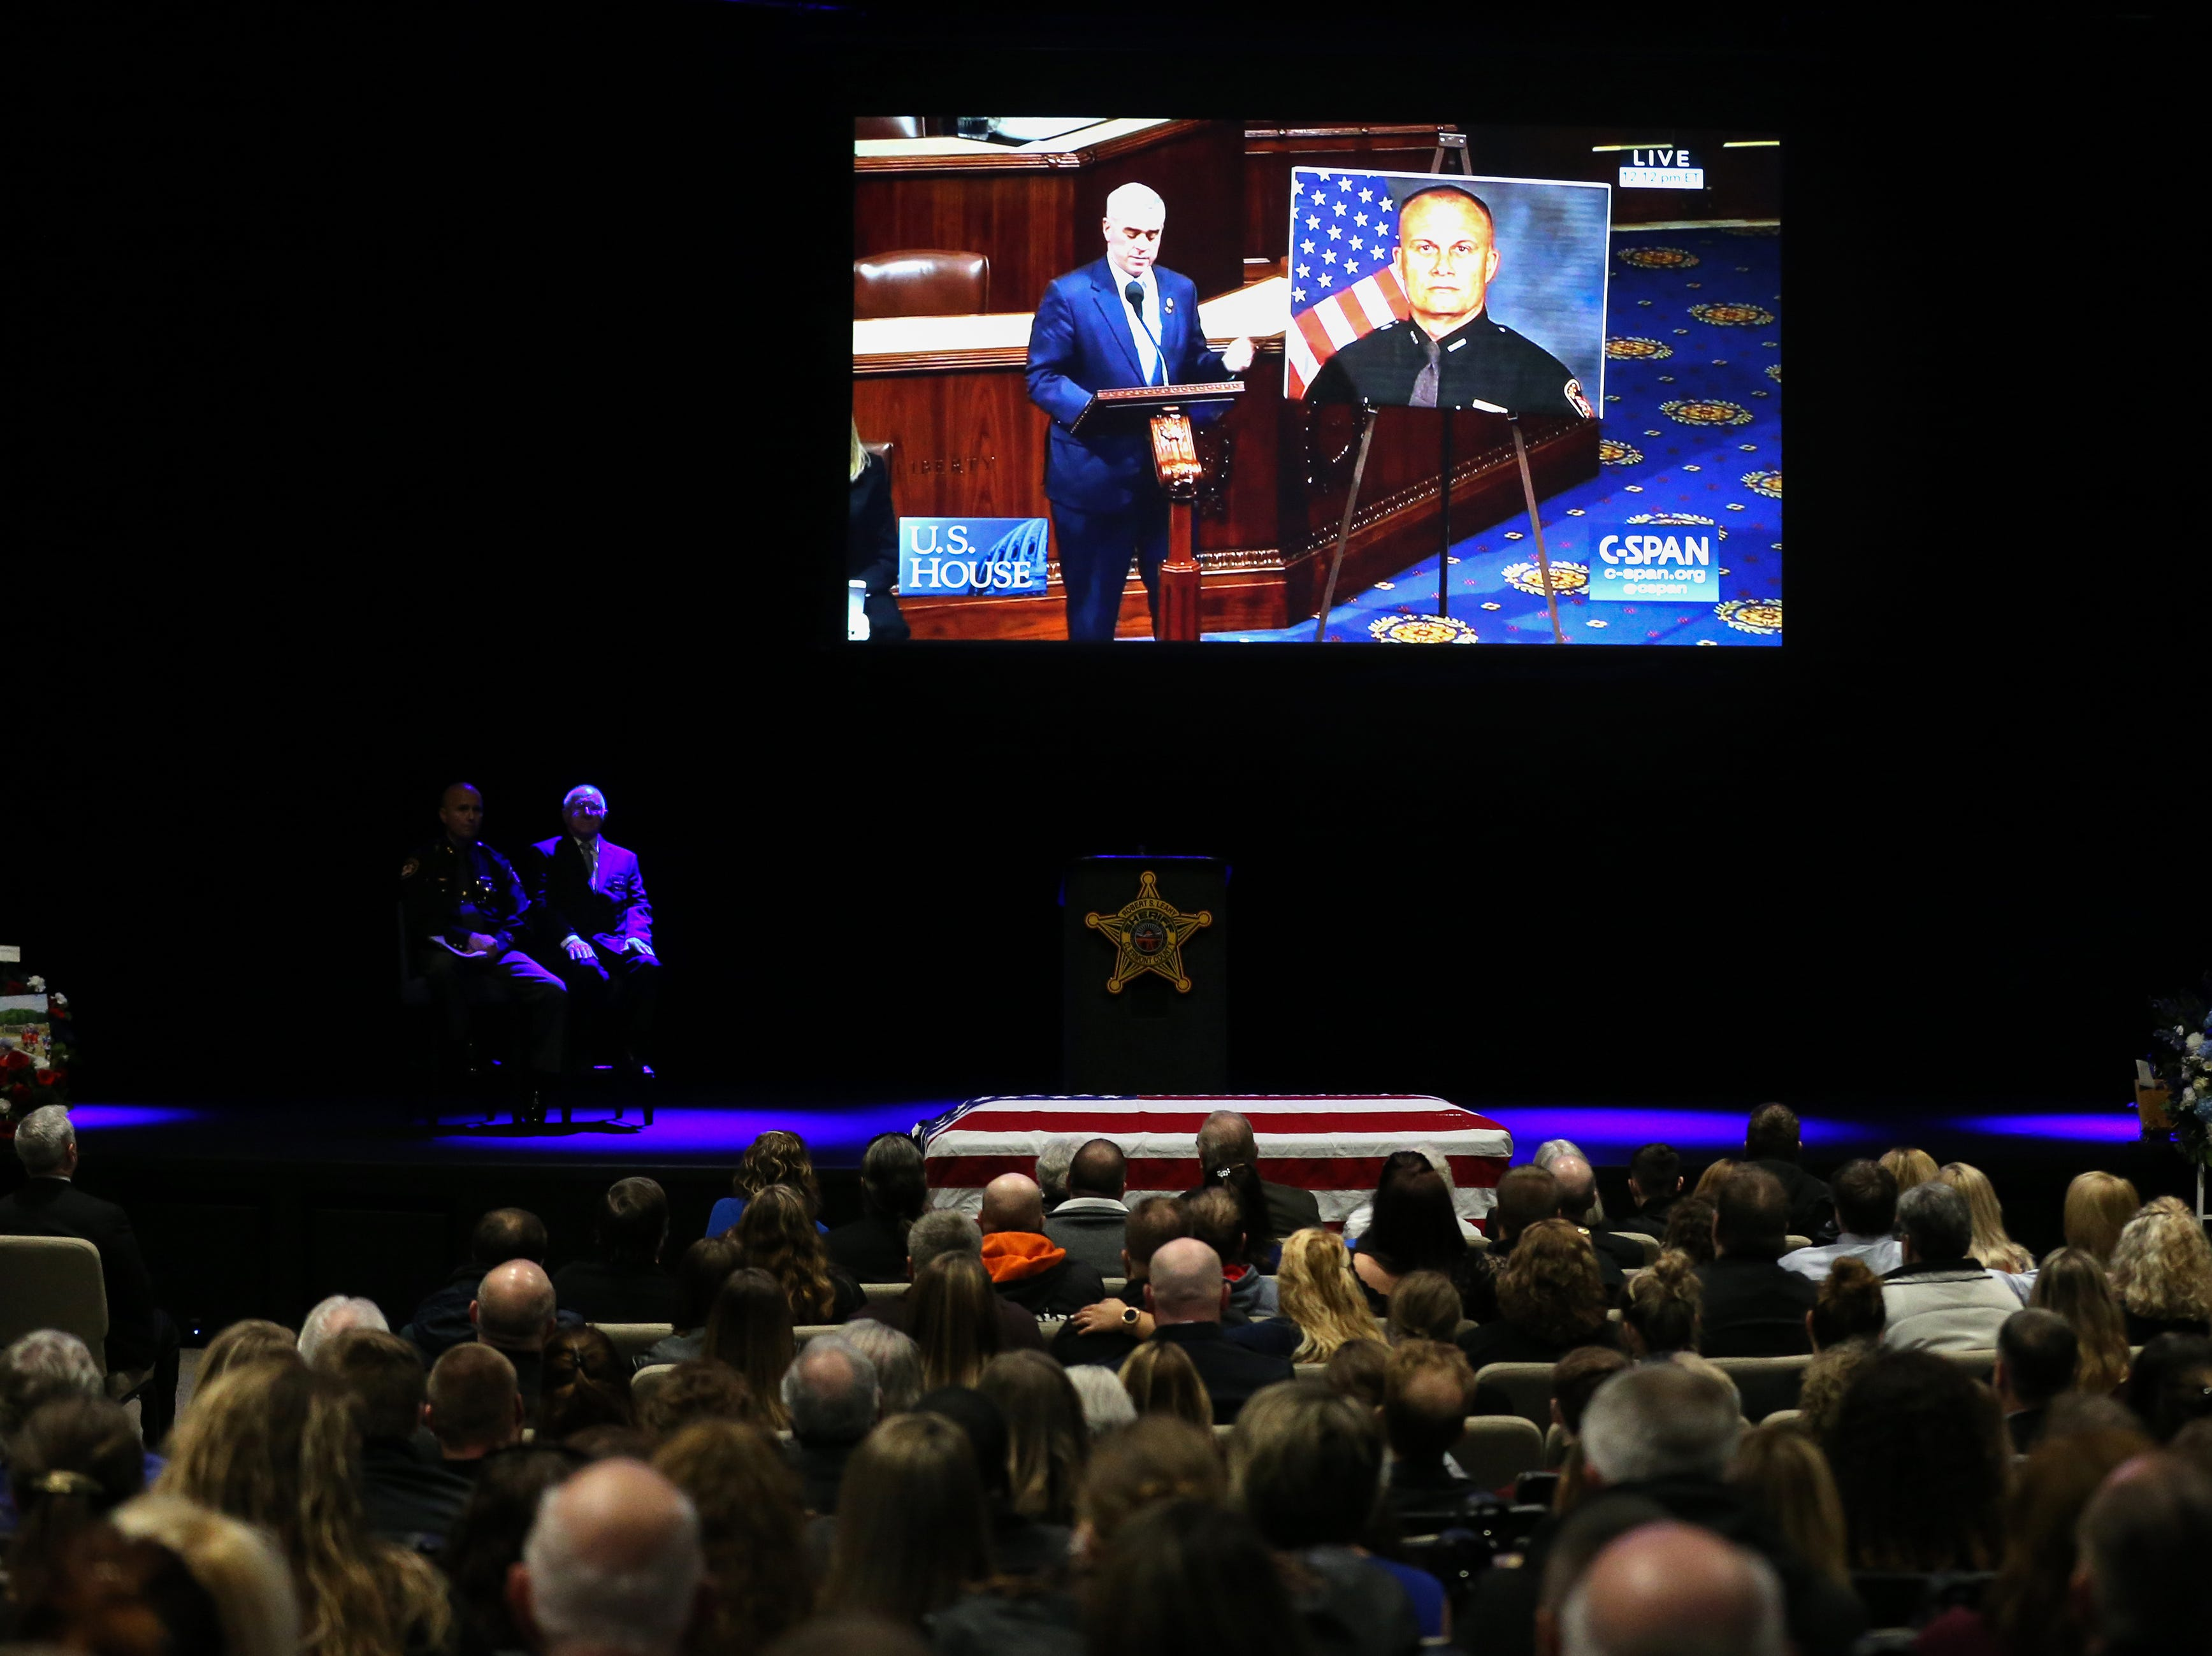 A video message is played featuring U.S. Rep. Brad Wenstrup on the floor of the House of Representatives during funeral services for Clermont County Sheriff's Detective William Lee Brewer Jr., Friday, Feb. 8, 2019, at Mount Carmel Christian Church in Union Township, Ohio. Brewer, a 20-year veteran of the Clermont County Sheriff's Office, died in the line of duty. He was shot Feb. 2 during a standoff.